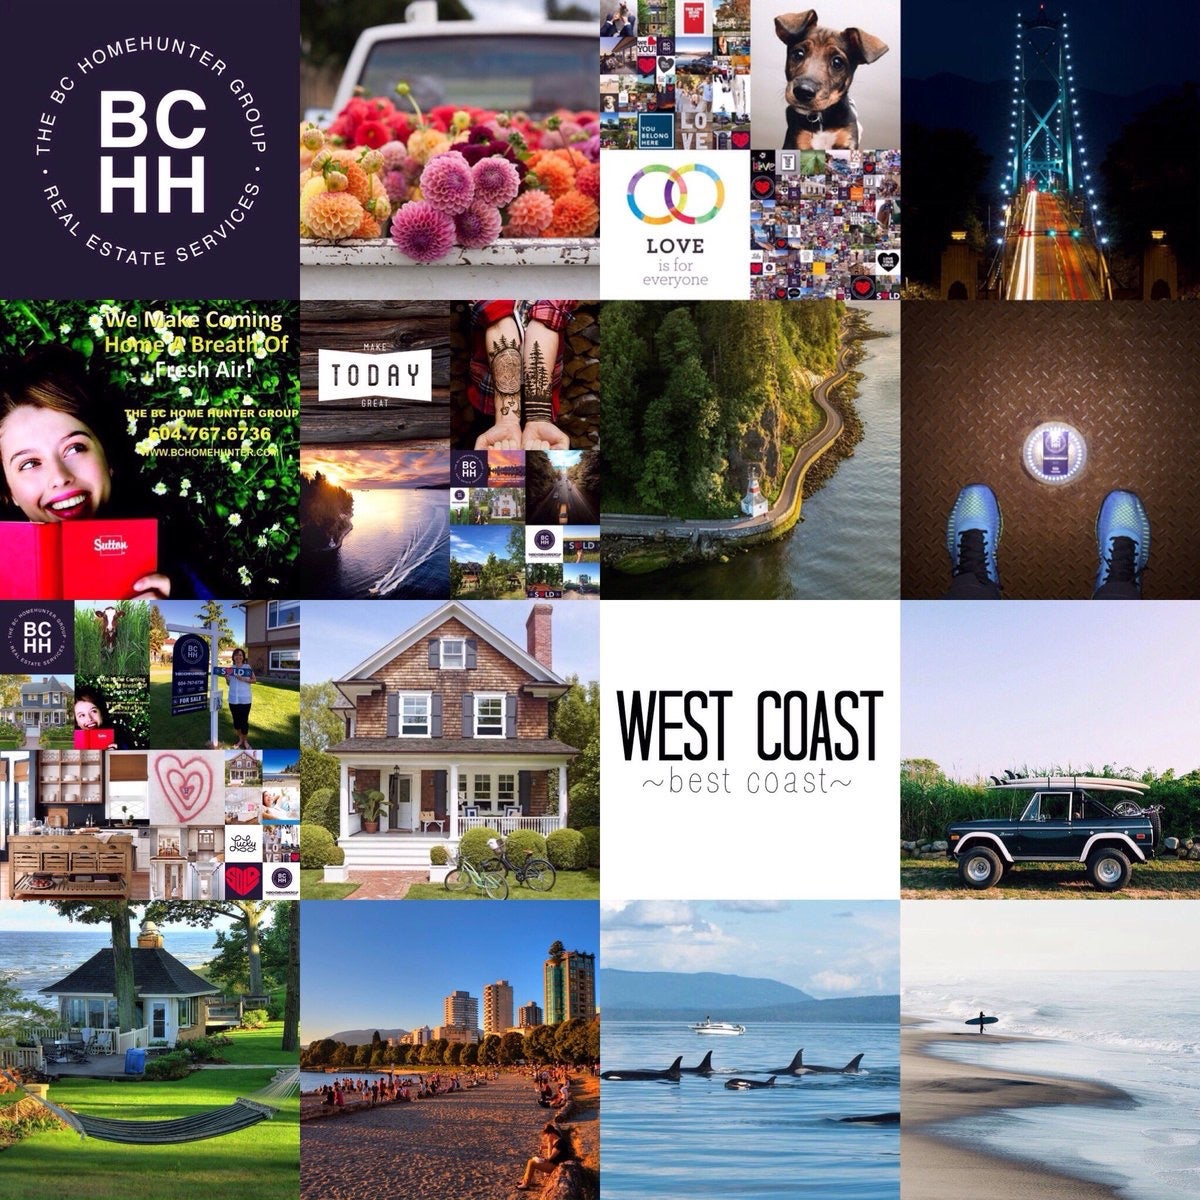 THE BC HOME HUNTER GROUP l AWARD WINNING URBAN & SUBURBAN REAL ESTATE SALES & HOMEOWNER ADVOCATES I METRO VANCOUVER l NORTH SHORE I SEA TO SKY I FRASER VALLEY l VANCOUVER ISLAND I OKANAGAN I WEST COAST I BC 604-767-6736 #BCHOMEHUNTER.COM #BCHH #WESELLBC.COM #WELOVEBC.COM #WEAREBCREALESTATE.COM #BCHH.CA VANCOUVERHOMEHUNTER.COM NORTHSHOREHOMEHUNTER.COM FRASERVALLEYHOMEHUNTER.COM #Vancouver #NorthShore #WestVancouver #NorthVancouver #FraserValley #CoalHarbour #Kerrisdale #Kitsilano #PointGrey #Marpole #Dunbar #Oakridge #Coquitlam #EastVan #NorthShoreHomehunter #Yaletown #FraserValleyHomeHunter #VancouverHomeHunter #LynnValley #Lonsdale #WhiteRock #VancouverHomeHunter #FraserValleyHomeHunter #NorthShoreHomeHunter #WhiteRockHomeHunter #SouthSurreyHomeHunter Vancouver Real Estate North Shore Real Estate Fraser Valley Real Estate #VANRE  @BCHOMEHUNTER  THE BC HOME HUNTER GROUP  AWARD WINNING URBAN & SUBURBAN REAL ESTATE TEAM WITH HEART 604-767-6736  METRO VANCOUVER I FRASER VALLEY I BC  #Vancouver #WhiteRock #SouthSurrey #Starbucks #WestVancouver #Langley #MapleRidge #NorthVancouver #Langley #FraserValley #Burnaby #FortLangley #PittMeadows #Delta #Richmond #CoalHarbour #Surrey #Abbotsford #FraserValley #Kerrisdale #Cloverdale #Coquitlam #EastVan #Richmond #PortMoody #Yaletown #CrescentBeach #BCHHREALTY #MorganCreek #PortMoody #Burnaby #WeLoveBC #OceanPark #FraserValleyHomeHunter #VancouverHomeHunter